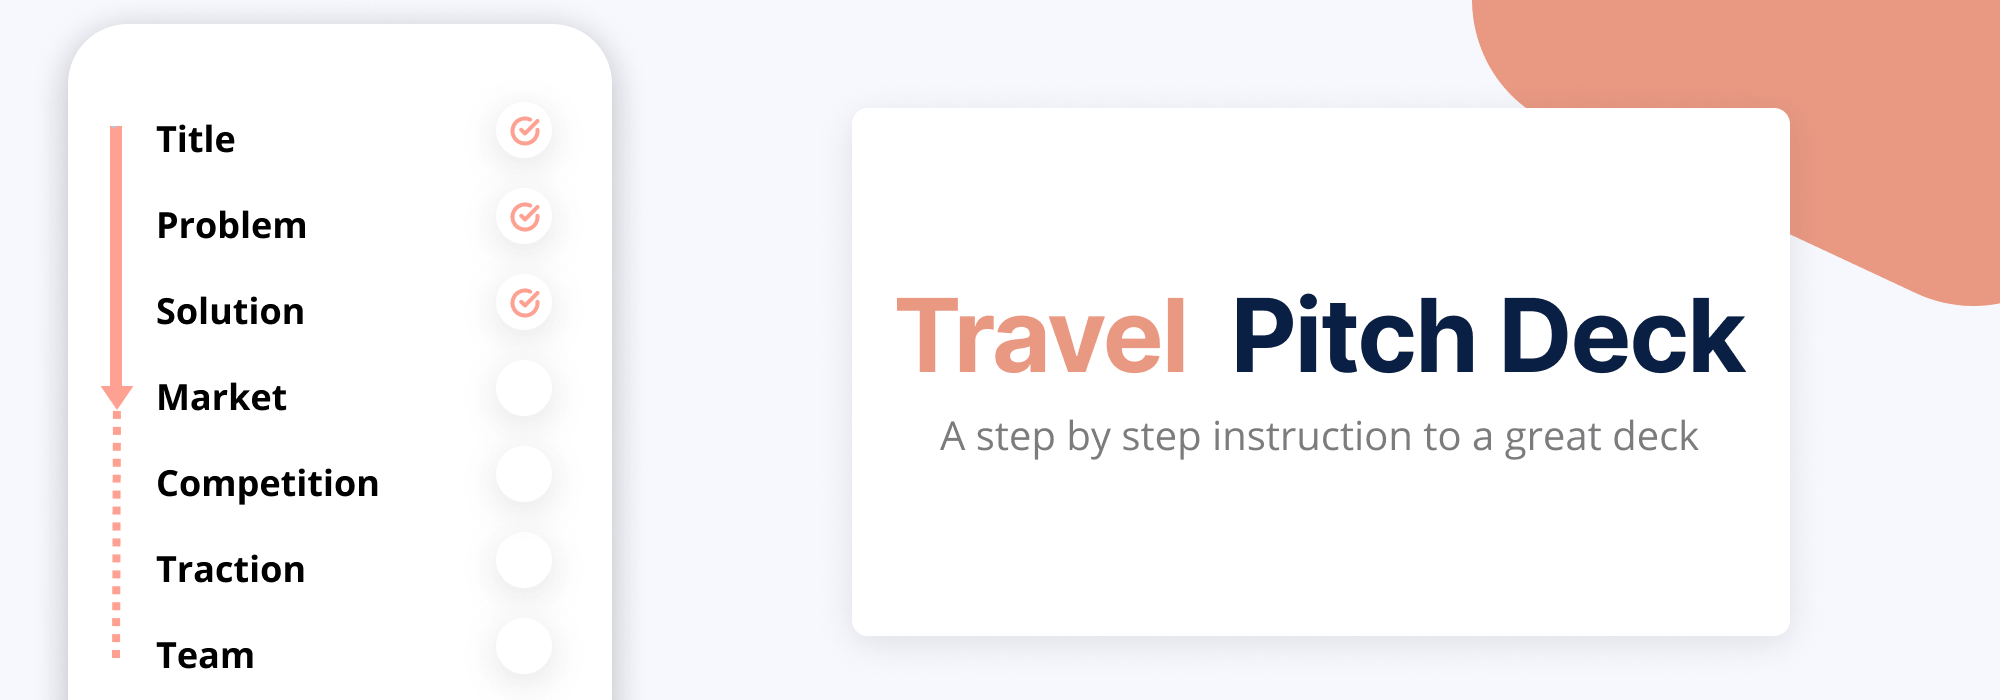 How to Create a Travel Startup Pitch Deck